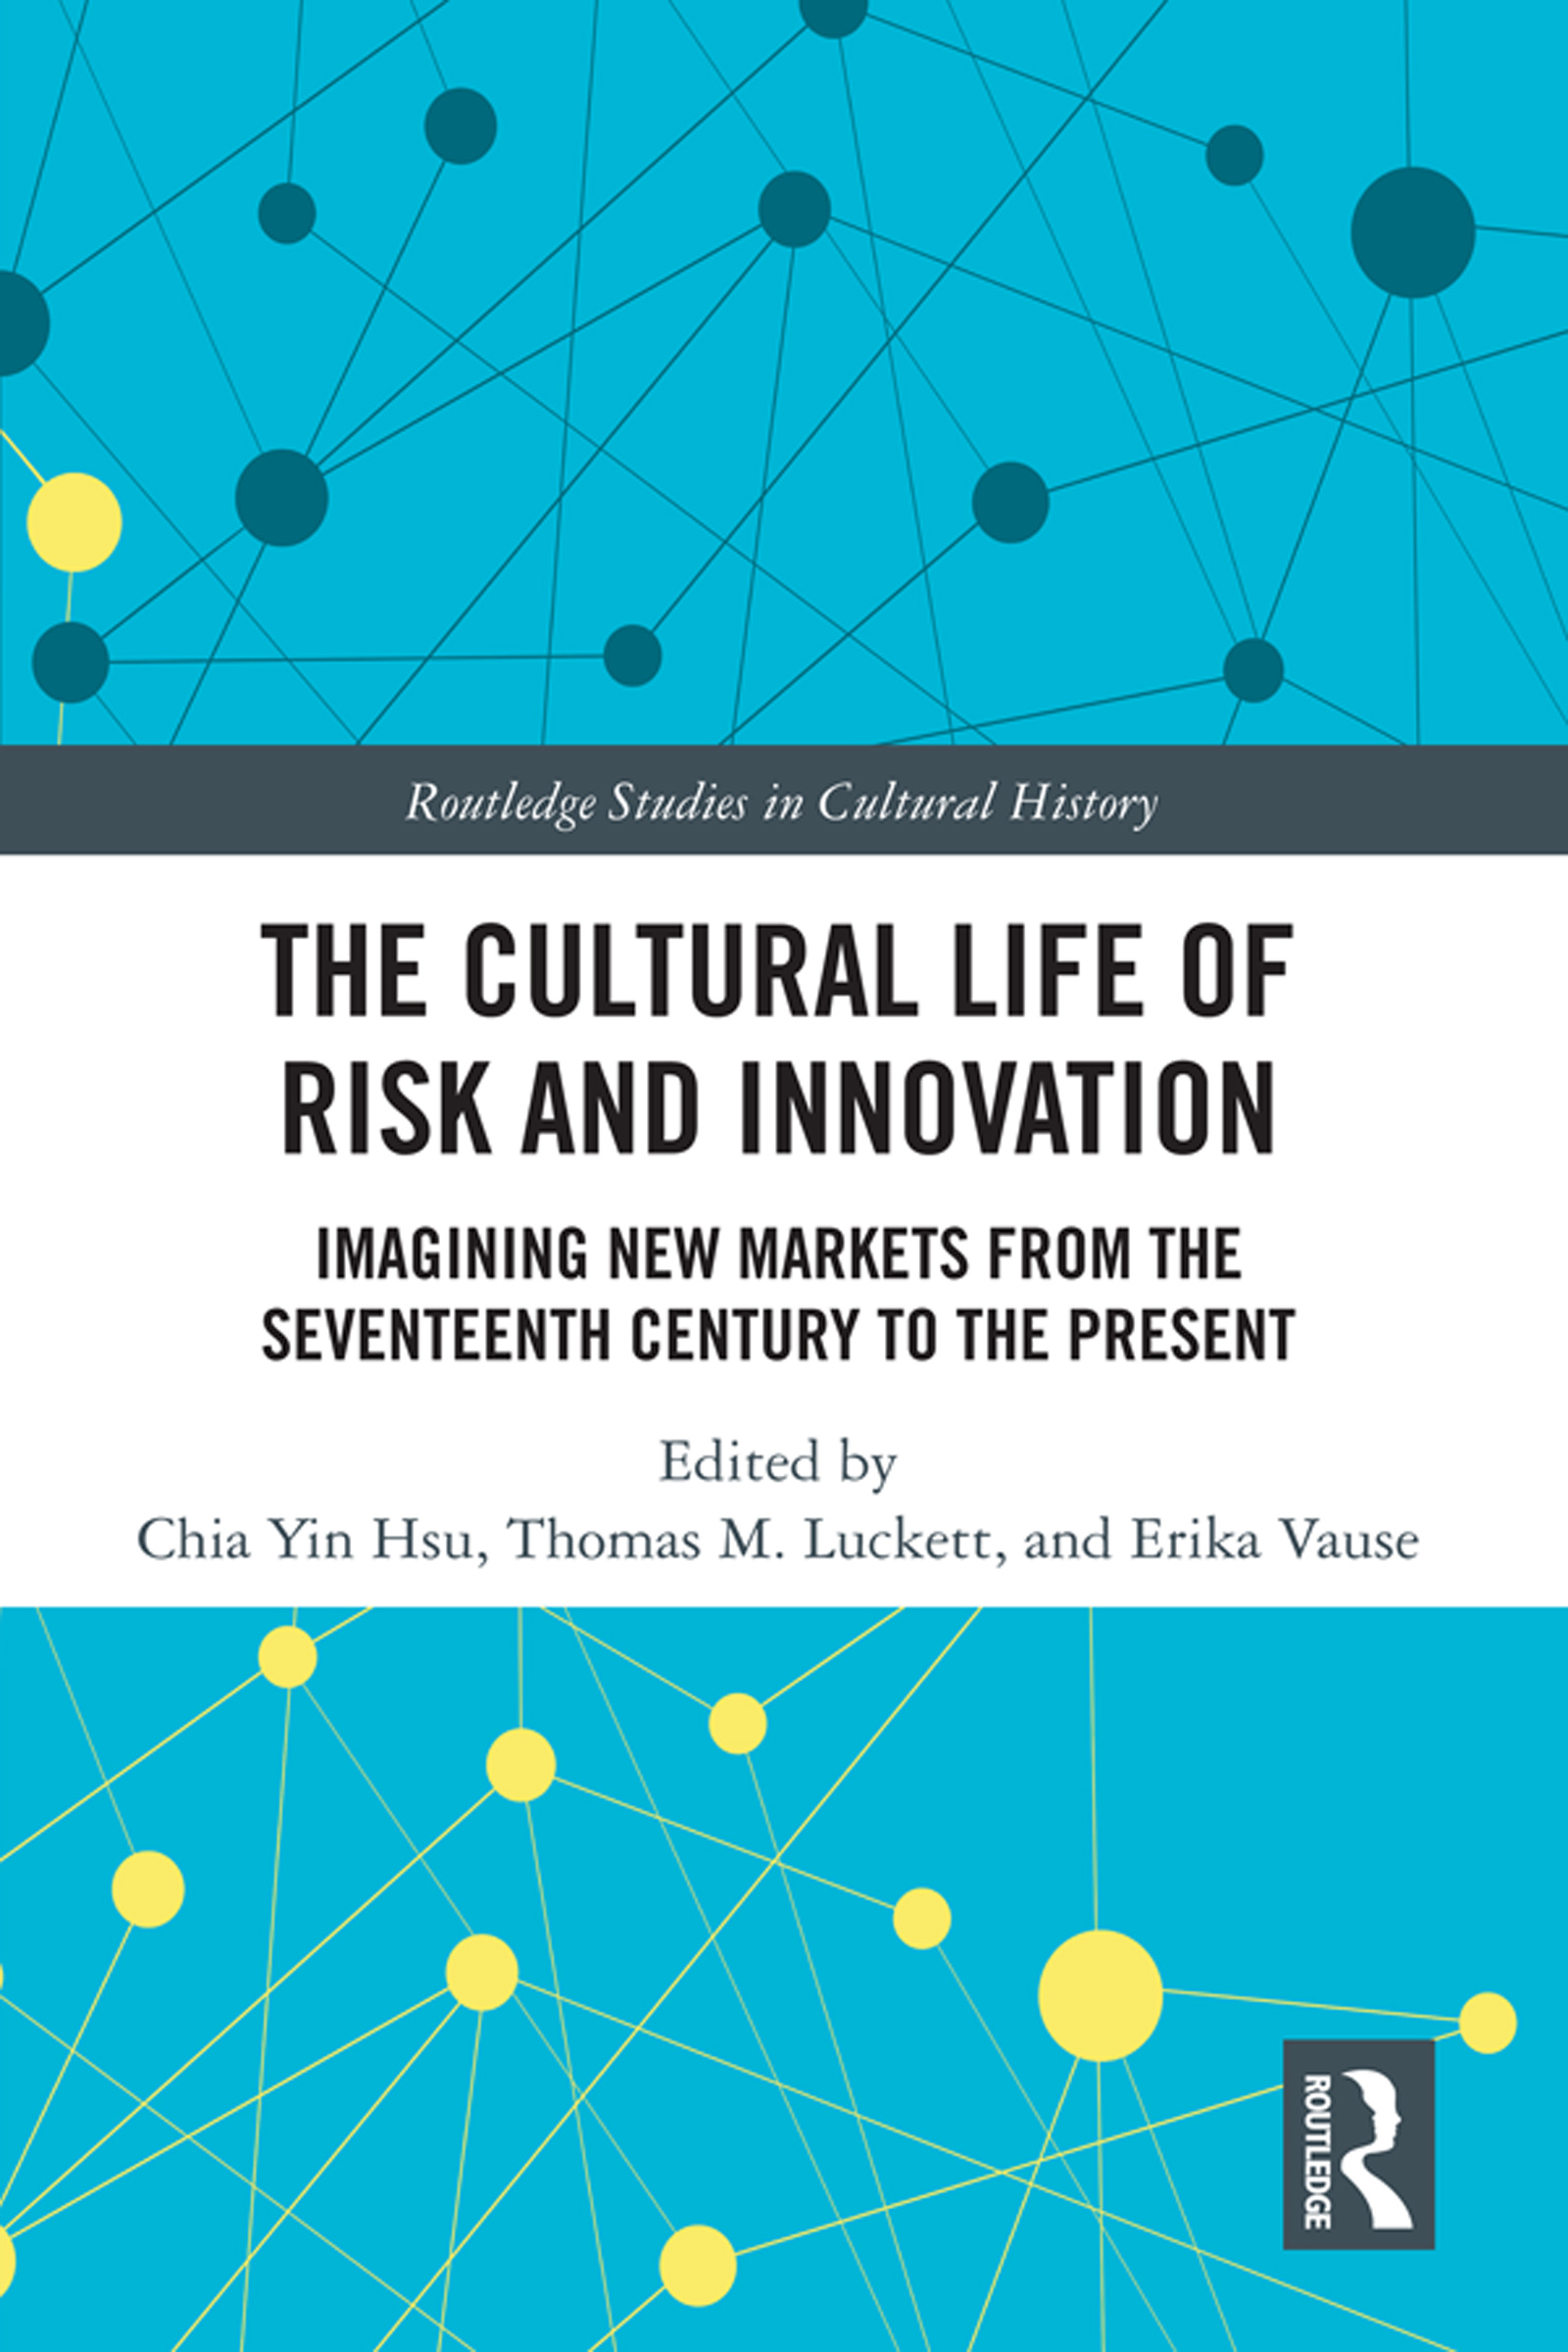 The Cultural Life of Risk and Innovation